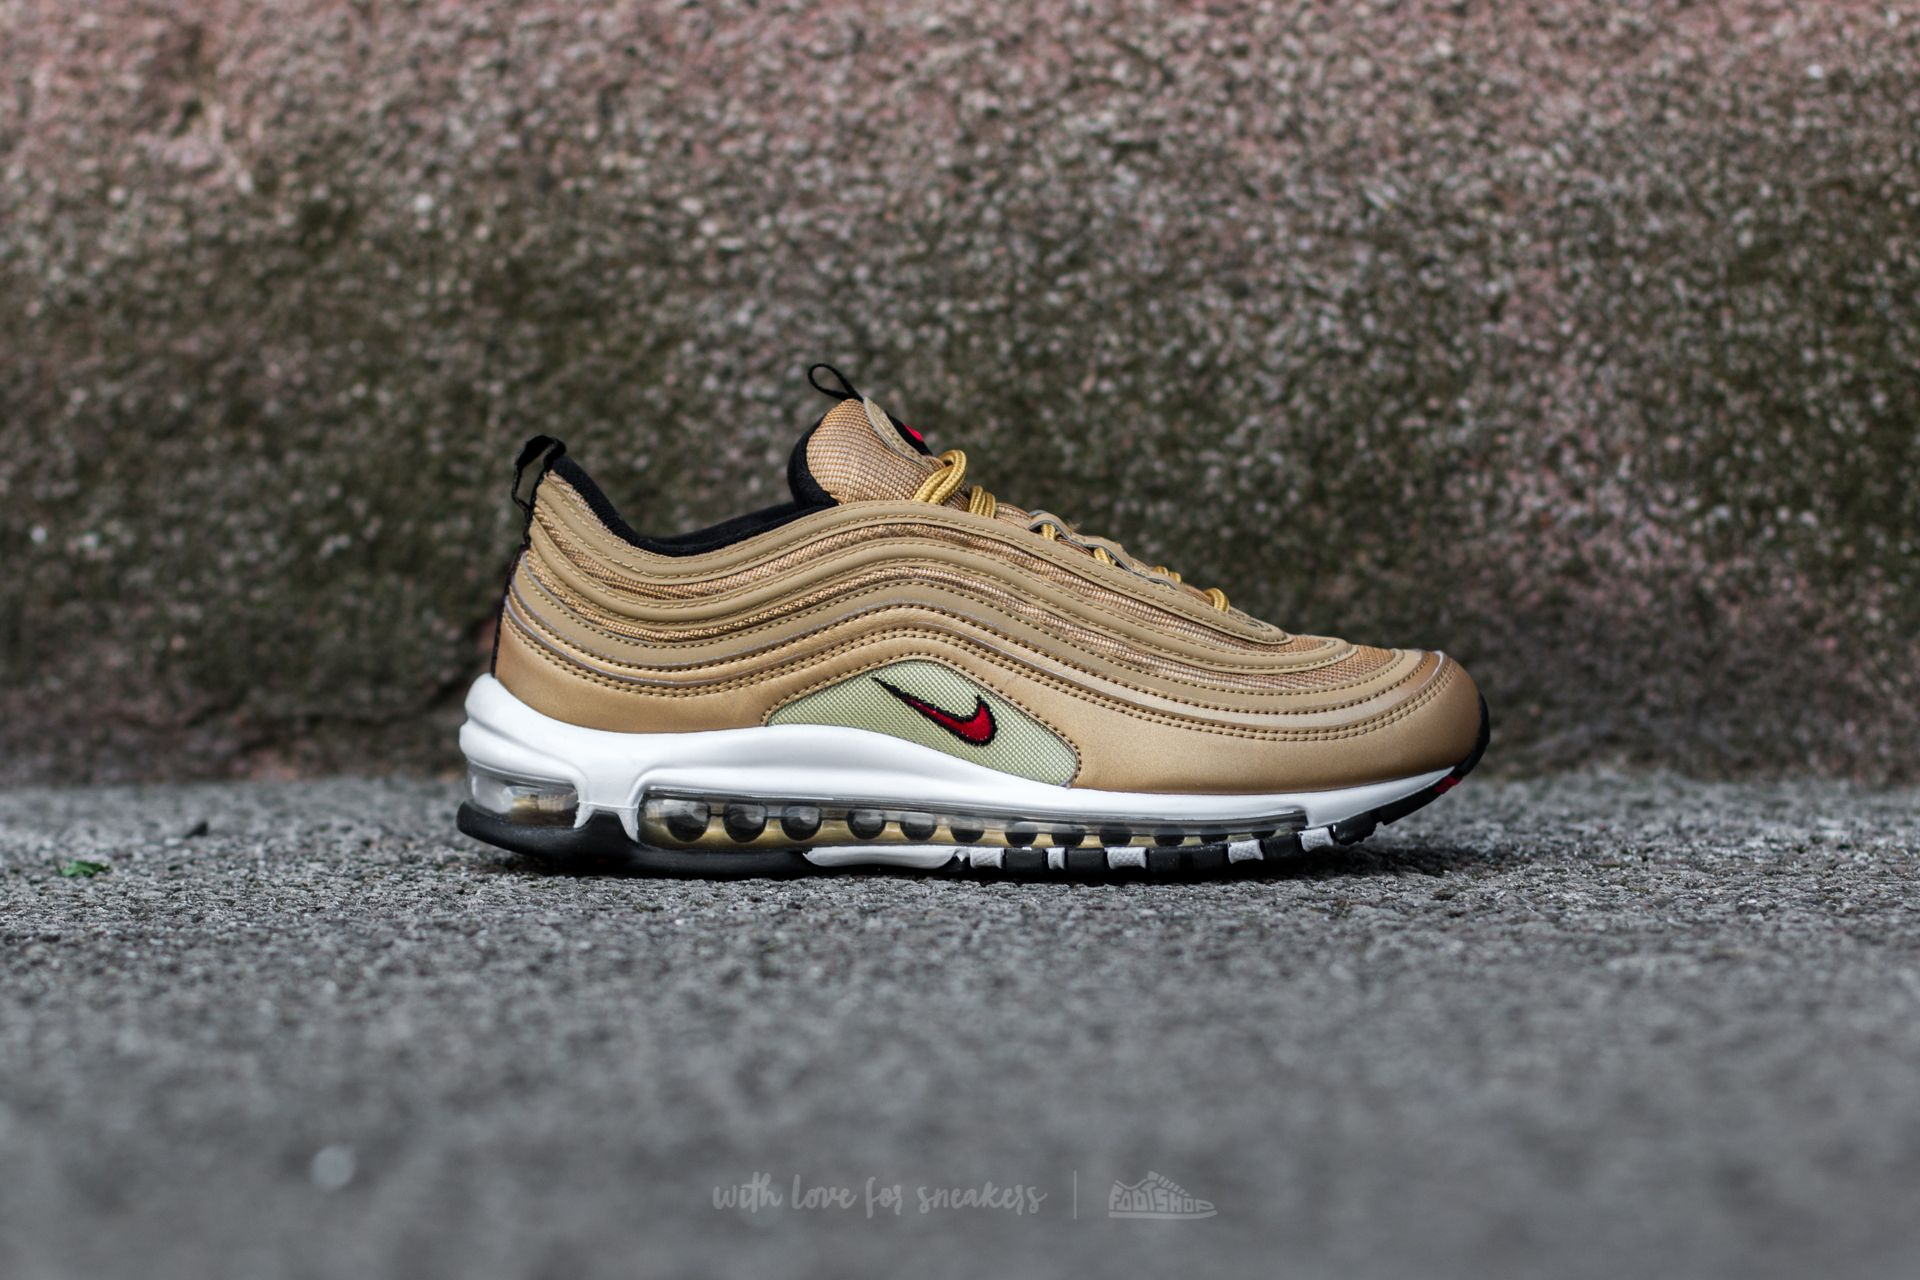 sale retailer f5cf2 0db9d Nike W Air Max 97 OG QS Metallic Gold/ Varsity Red | Footshop